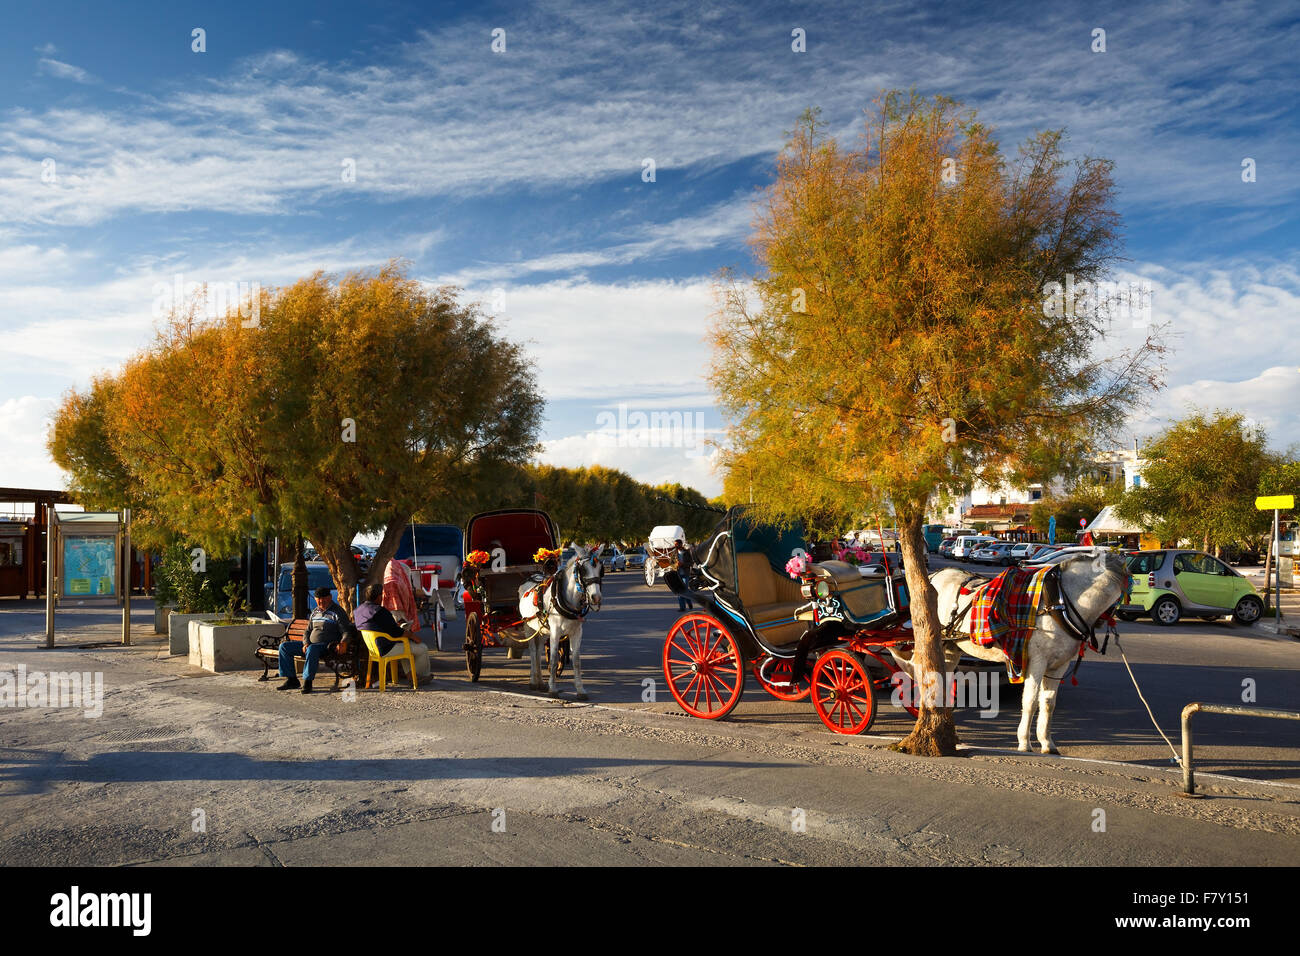 Horses and carriages at the seafront of Aegina town on Aegina island, Greece - Stock Image